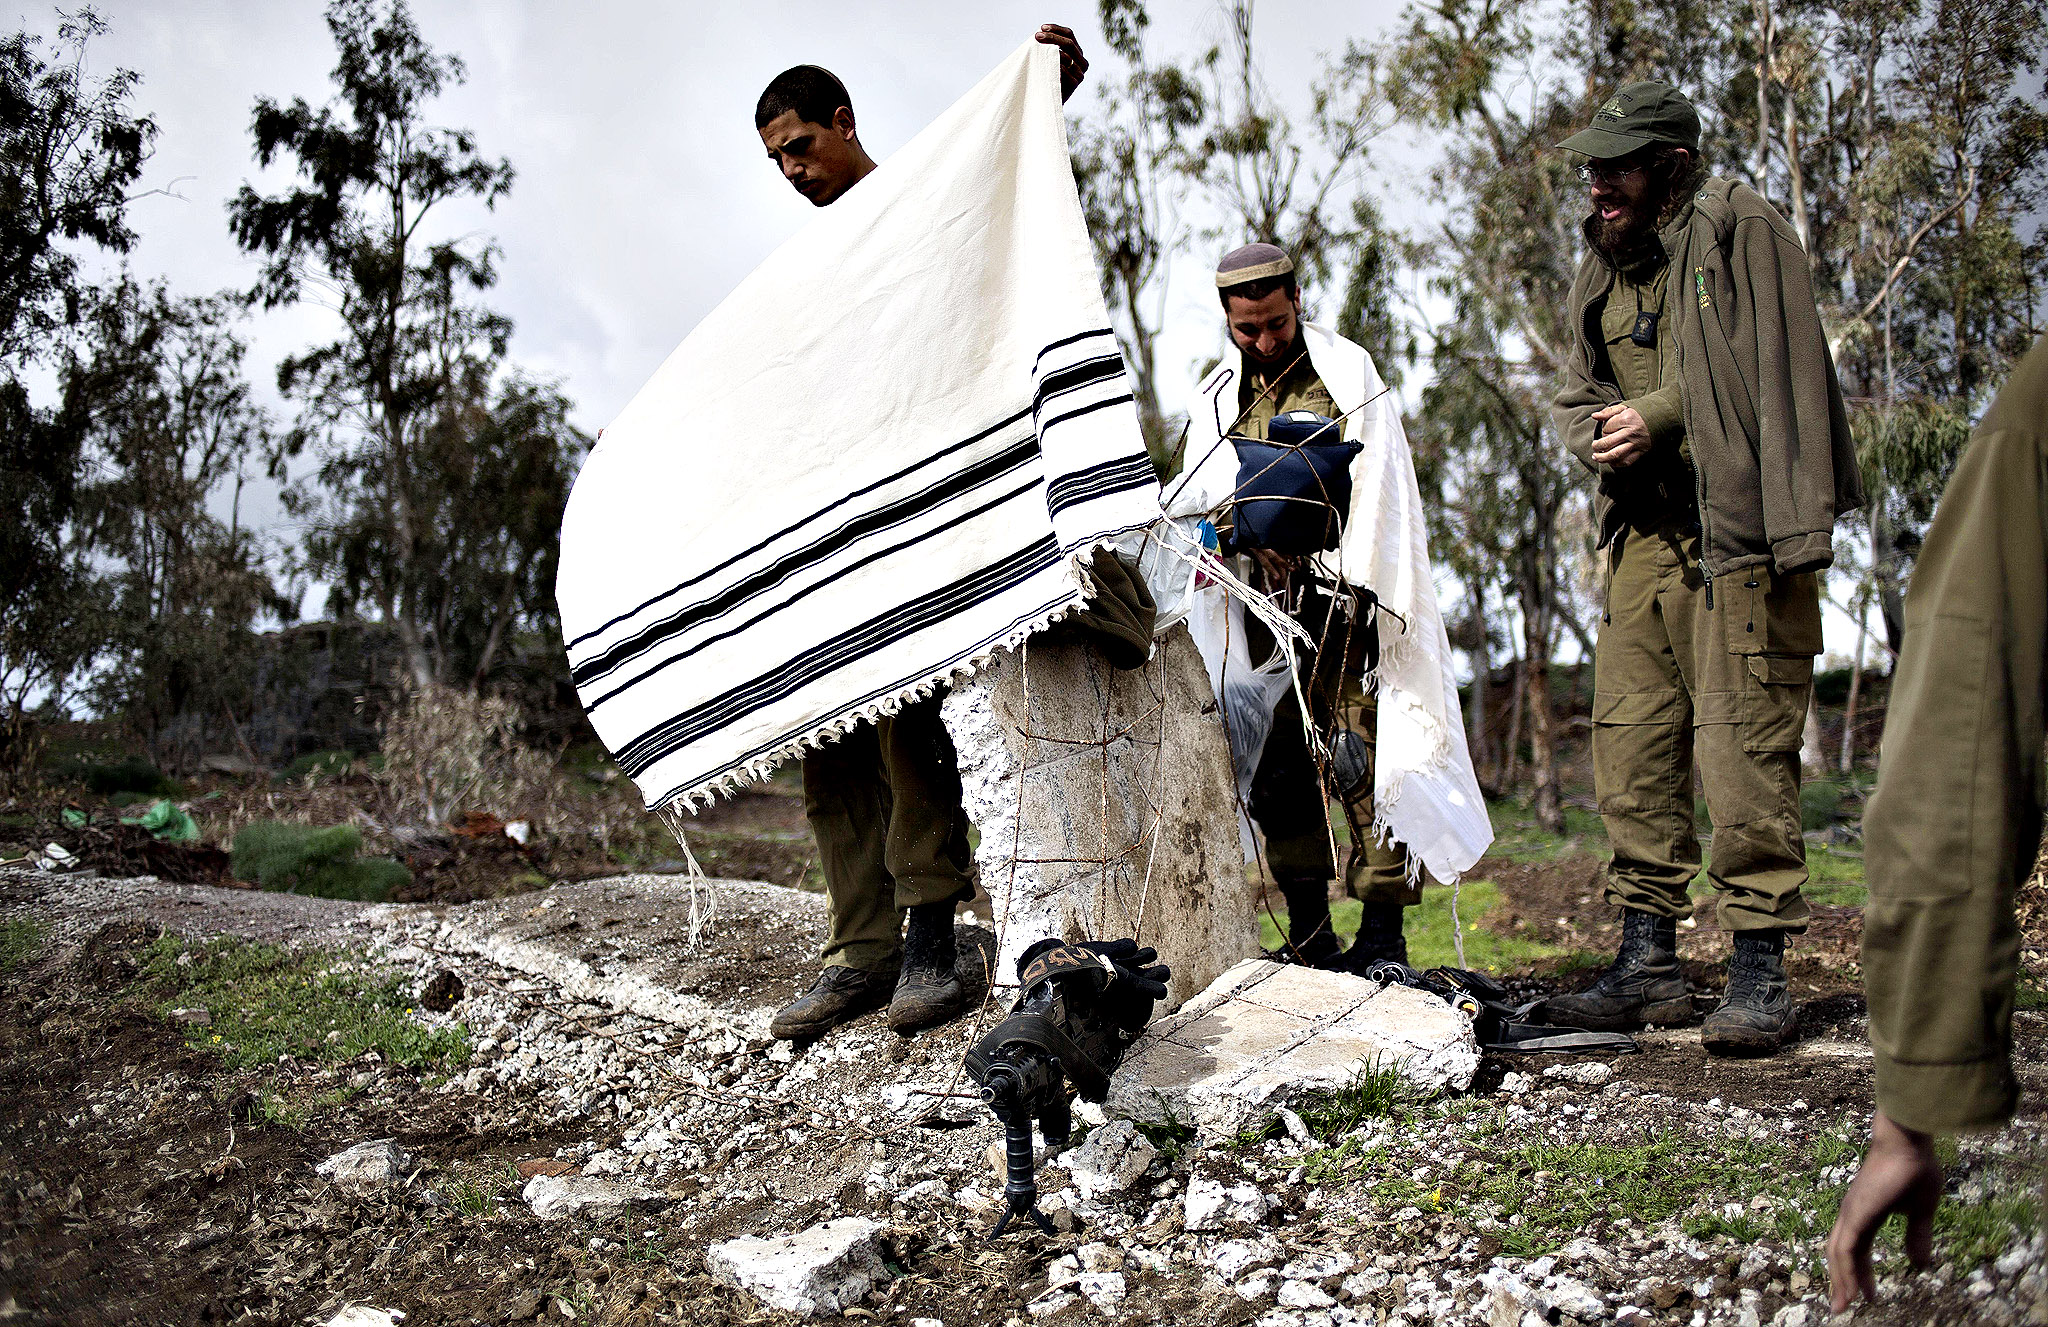 Israeli soldiers of the Golani brigade with prayer shawls after night training near the border with Syria in the Israeli-controlled Golan Heights, Wednesday, Feb. 26, 2014. Hezbollah says Israel carried out an airstrike targeting its positions in Lebanon near the border with Syria earlier this week, claiming it caused damage but no casualties. The Wednesday statement was the group's first acknowledgement of the reported Monday night airstrikes.